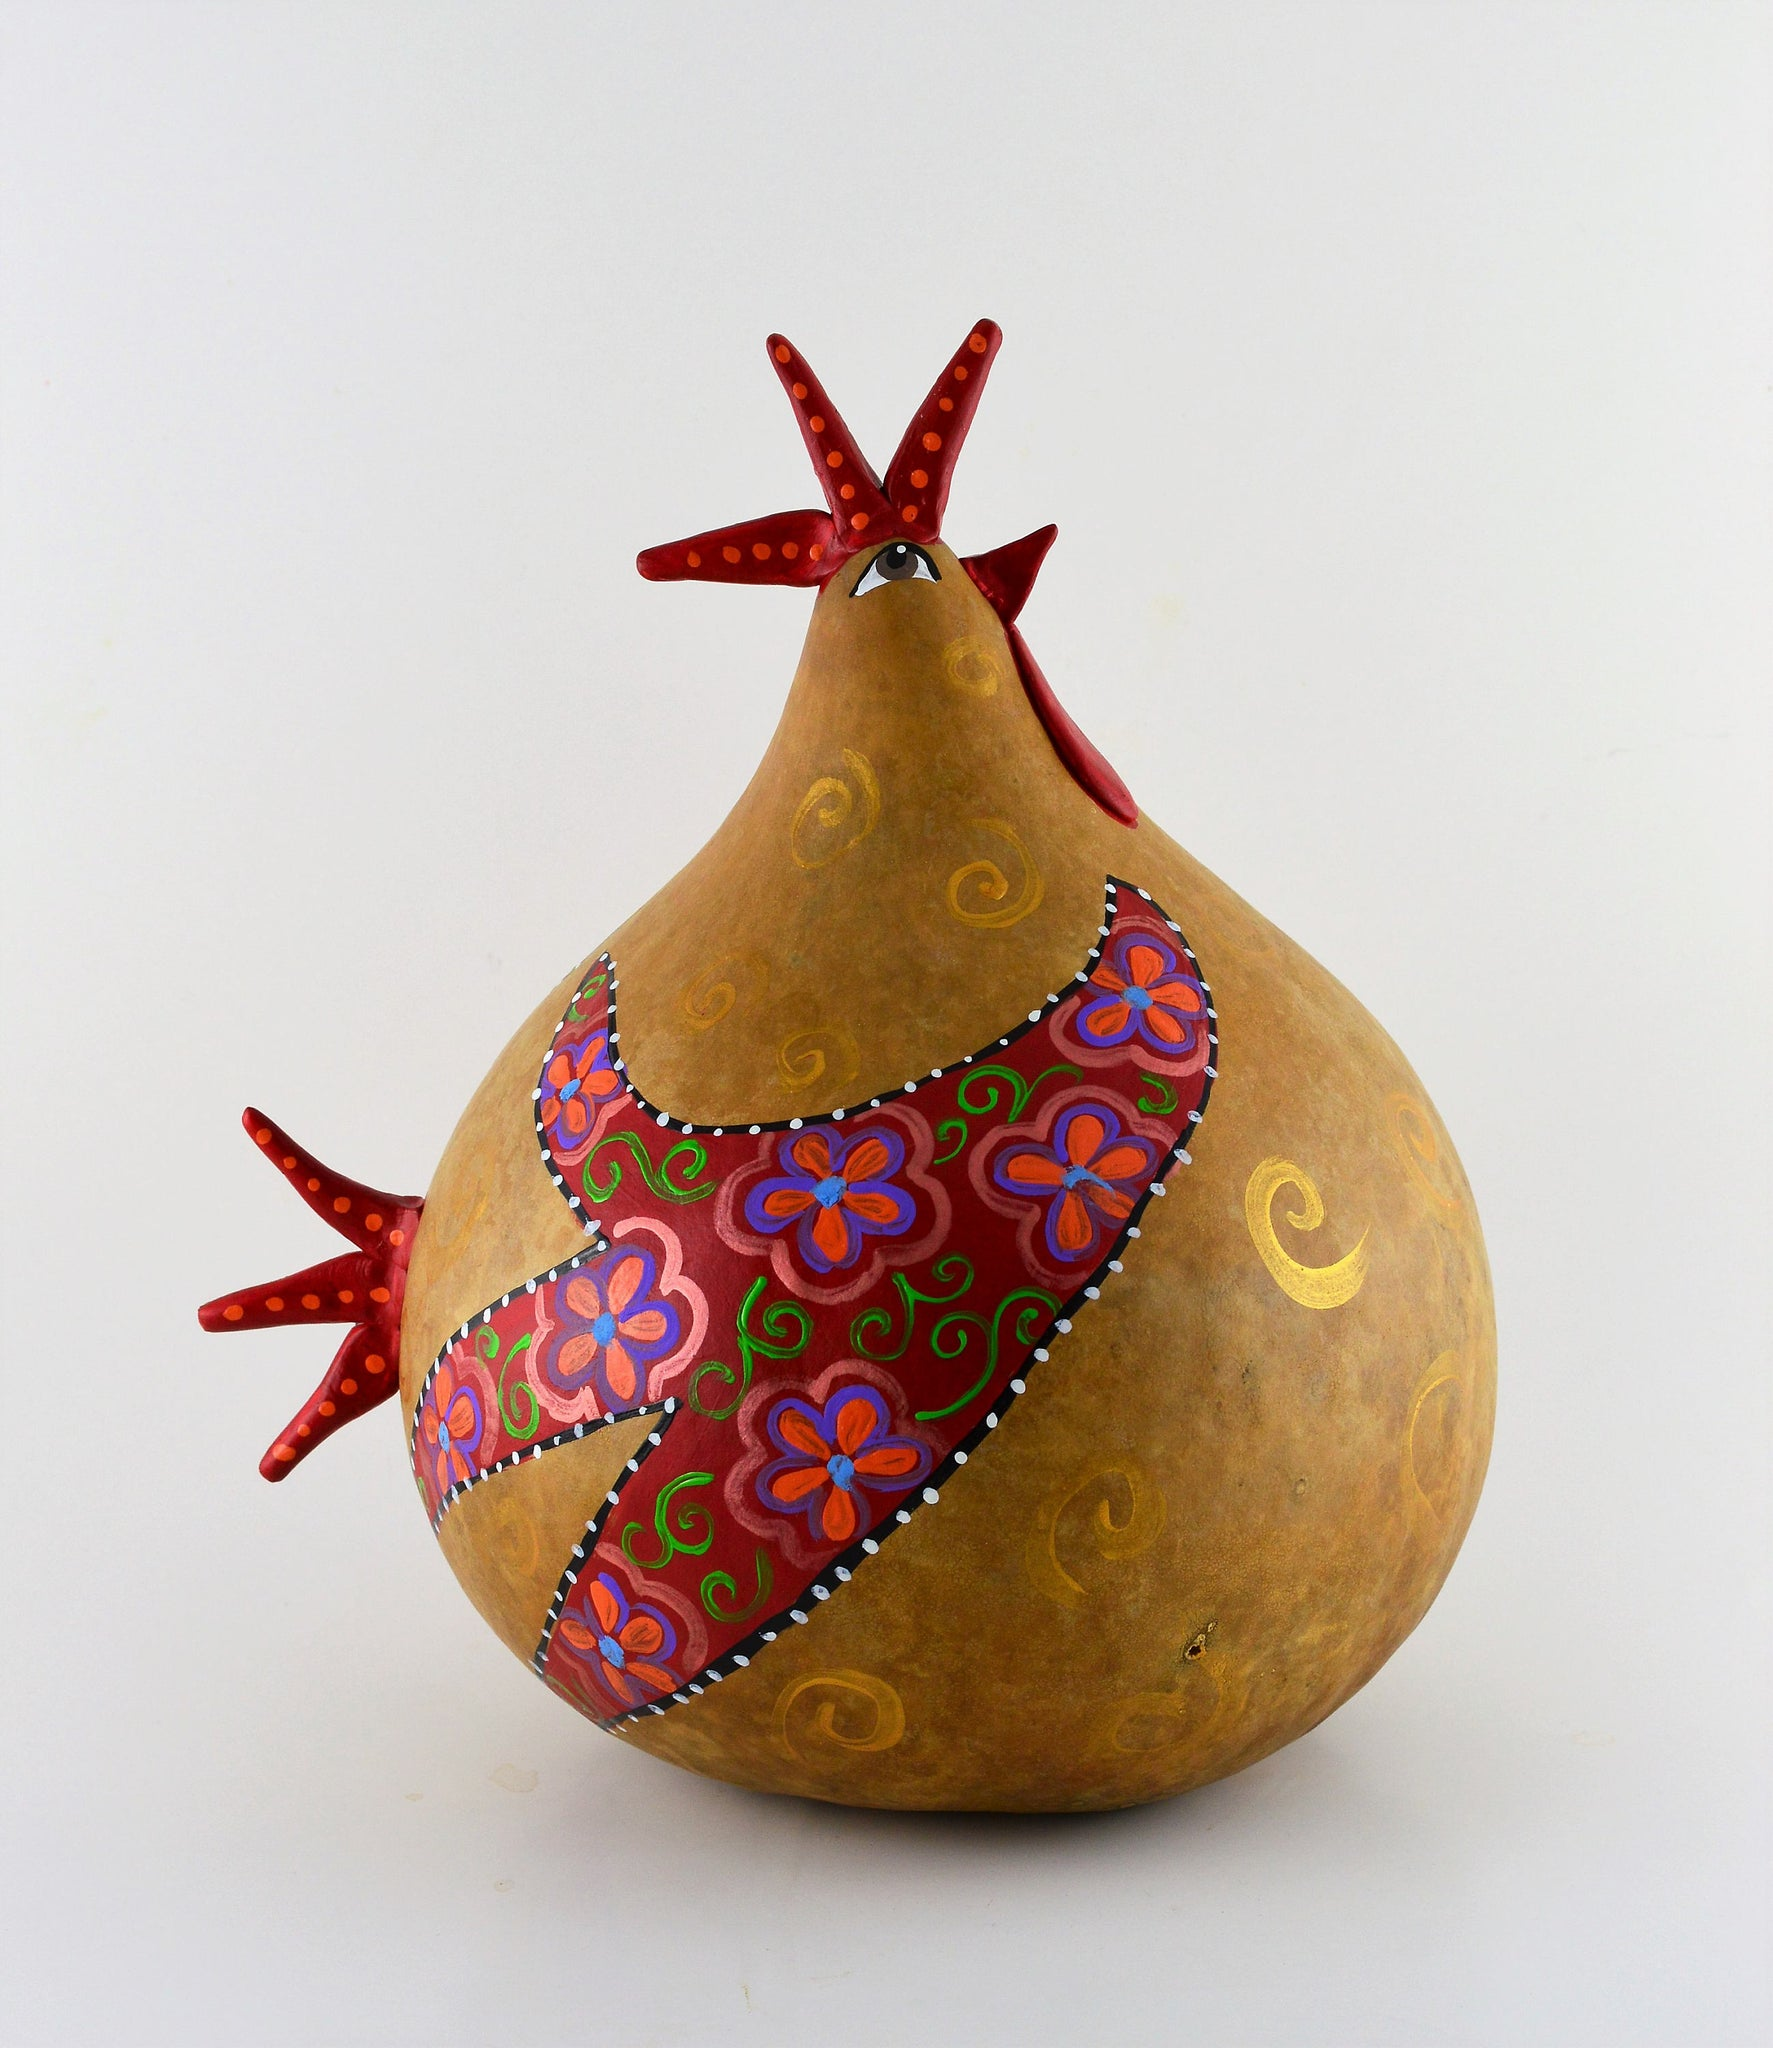 Gourd Chicken, Floral Design, Gourd Art,  Gourd Chicken, Natural Decor,  Folk Art Sculpture, OOAK, Handmade - Gourdaments